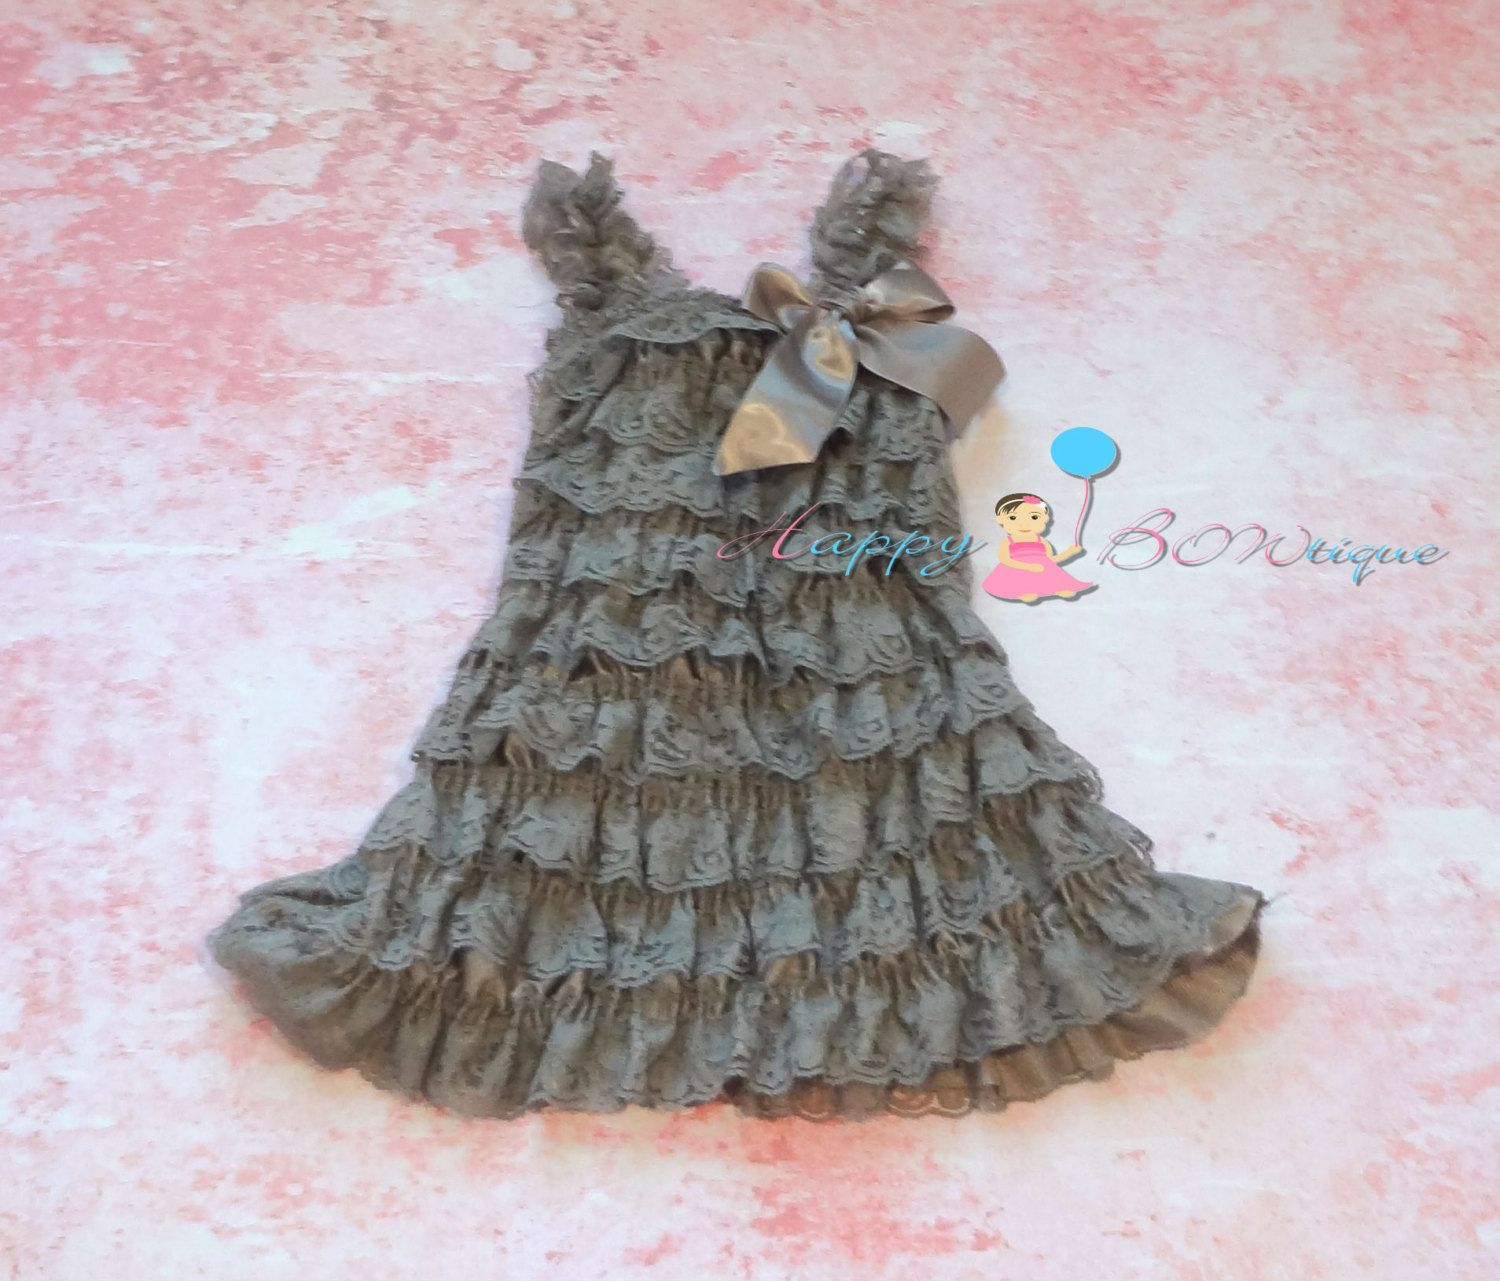 baby girls dress Vintage Grey Lace Dress ruffle by HappyBOWtique